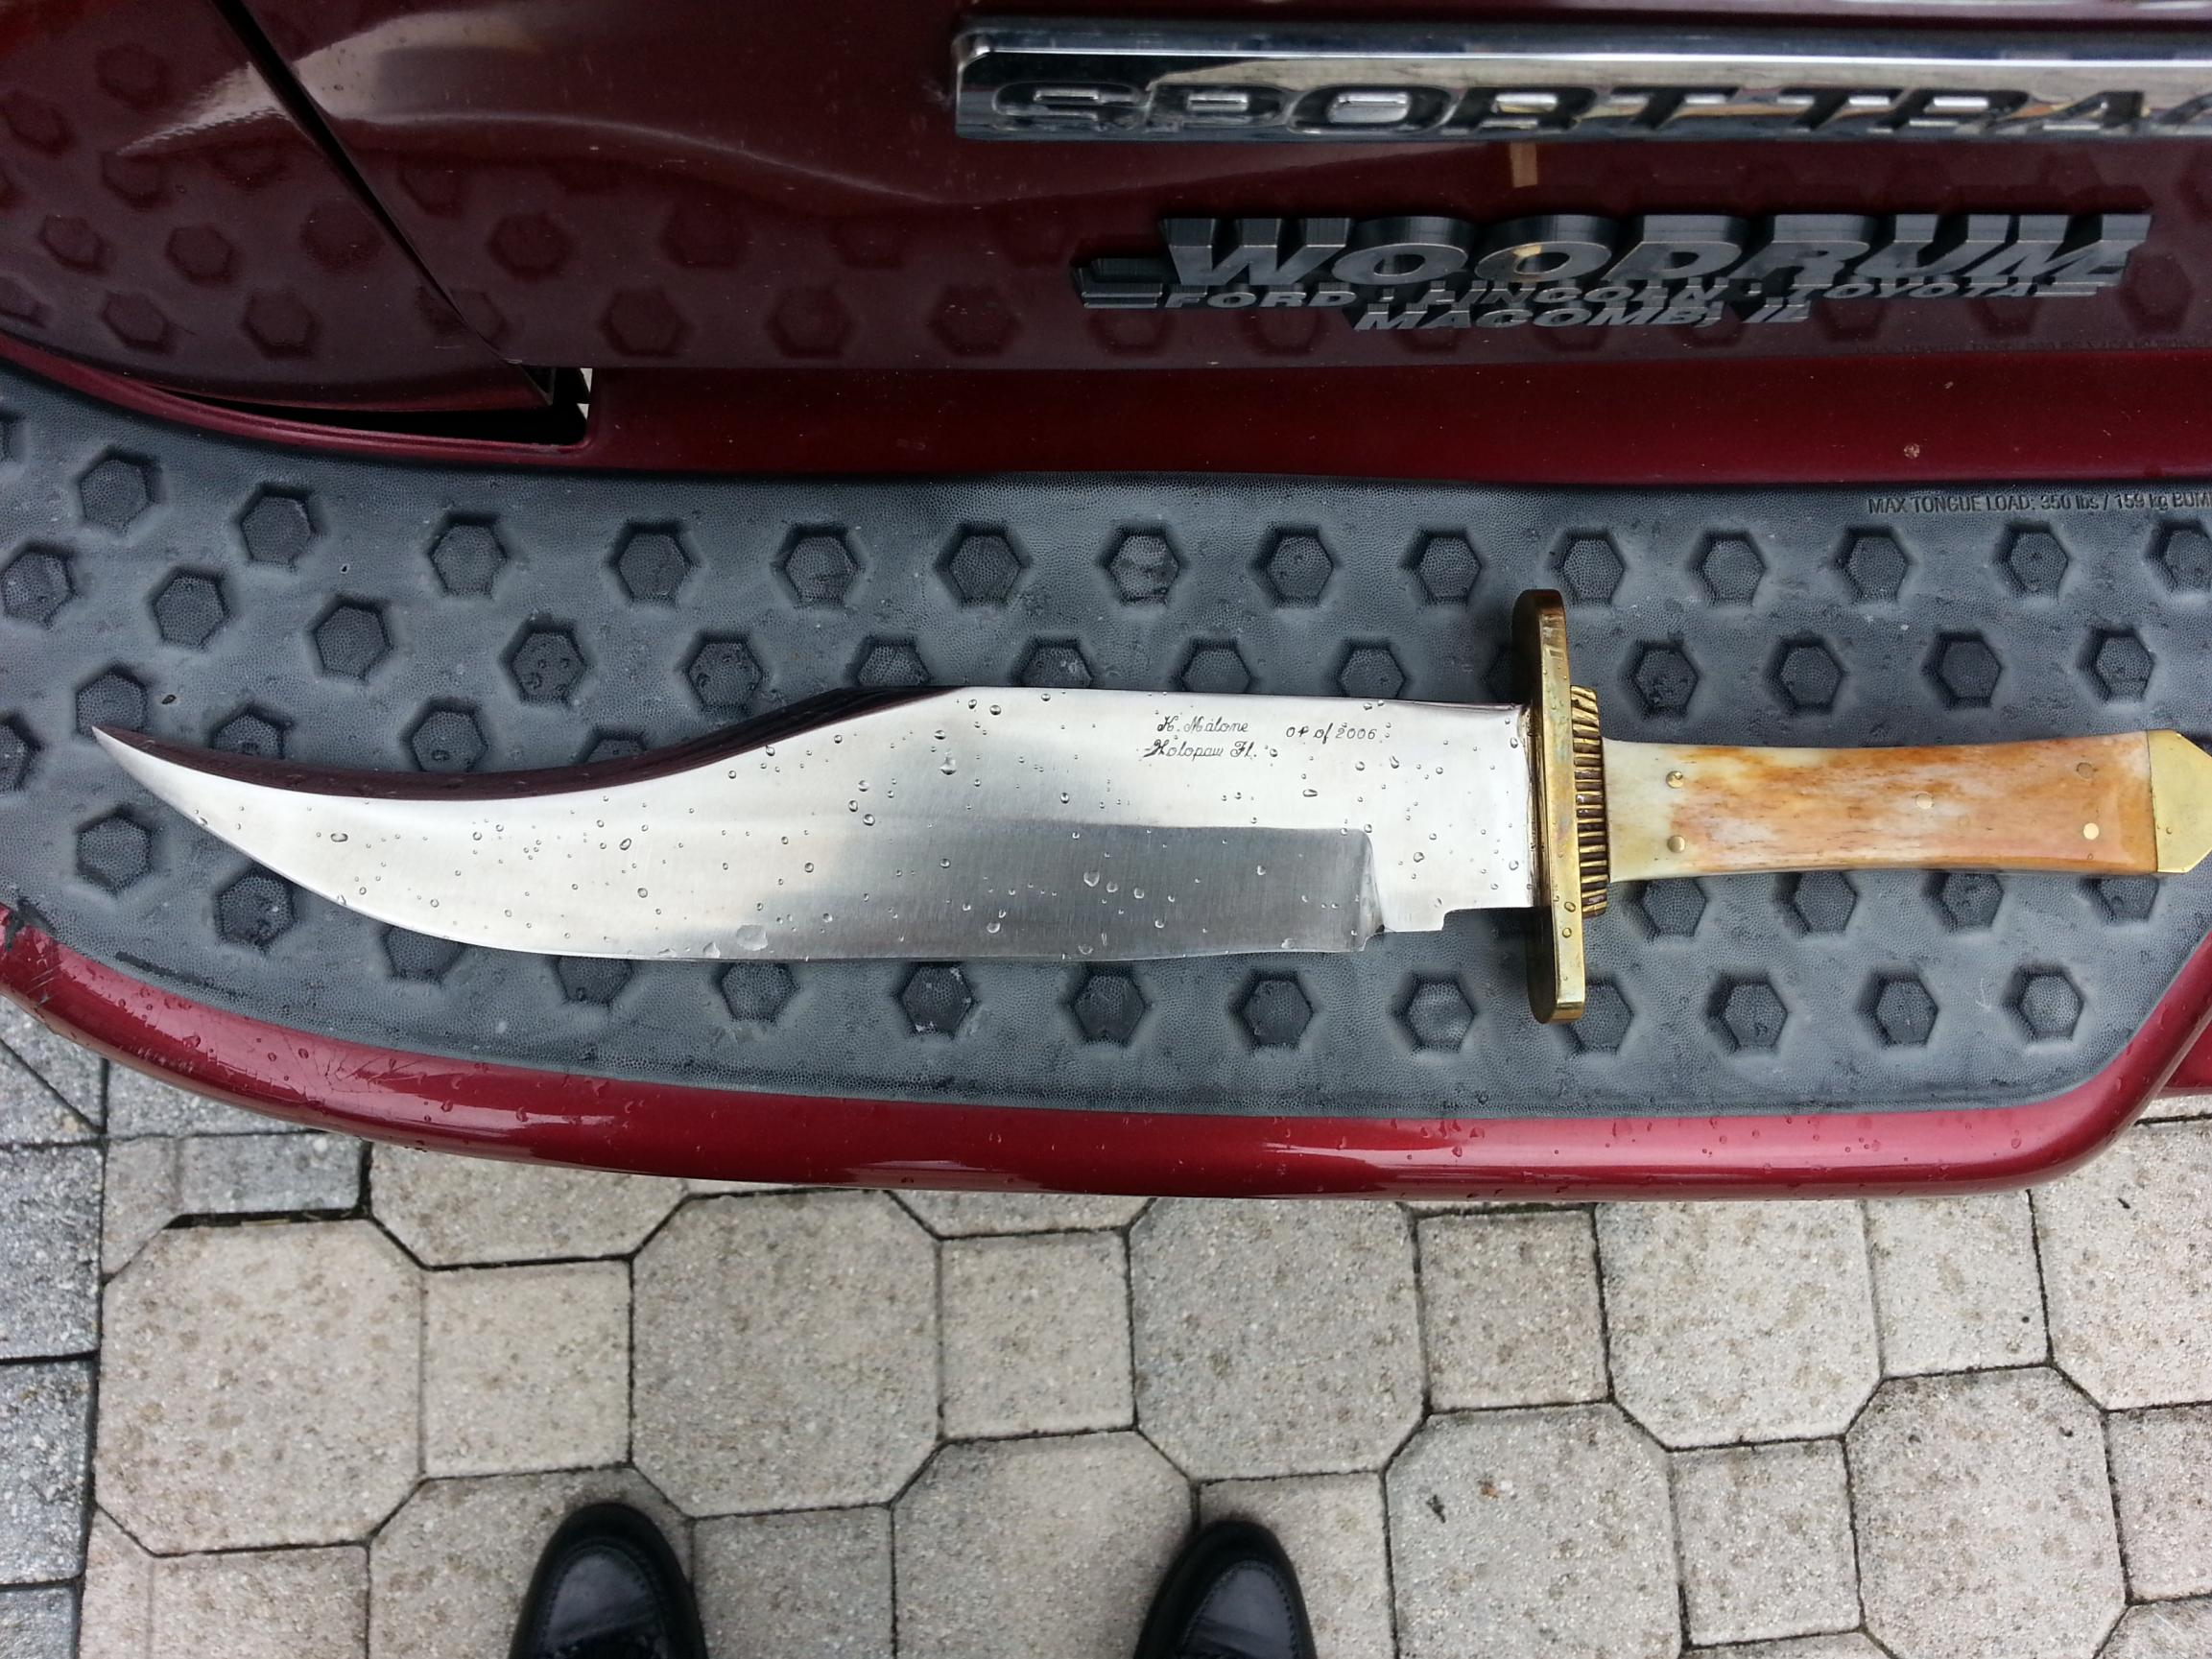 Awesome find on EBAY - Hand forged Bowie Knife from Florida-20130722_182540.jpg